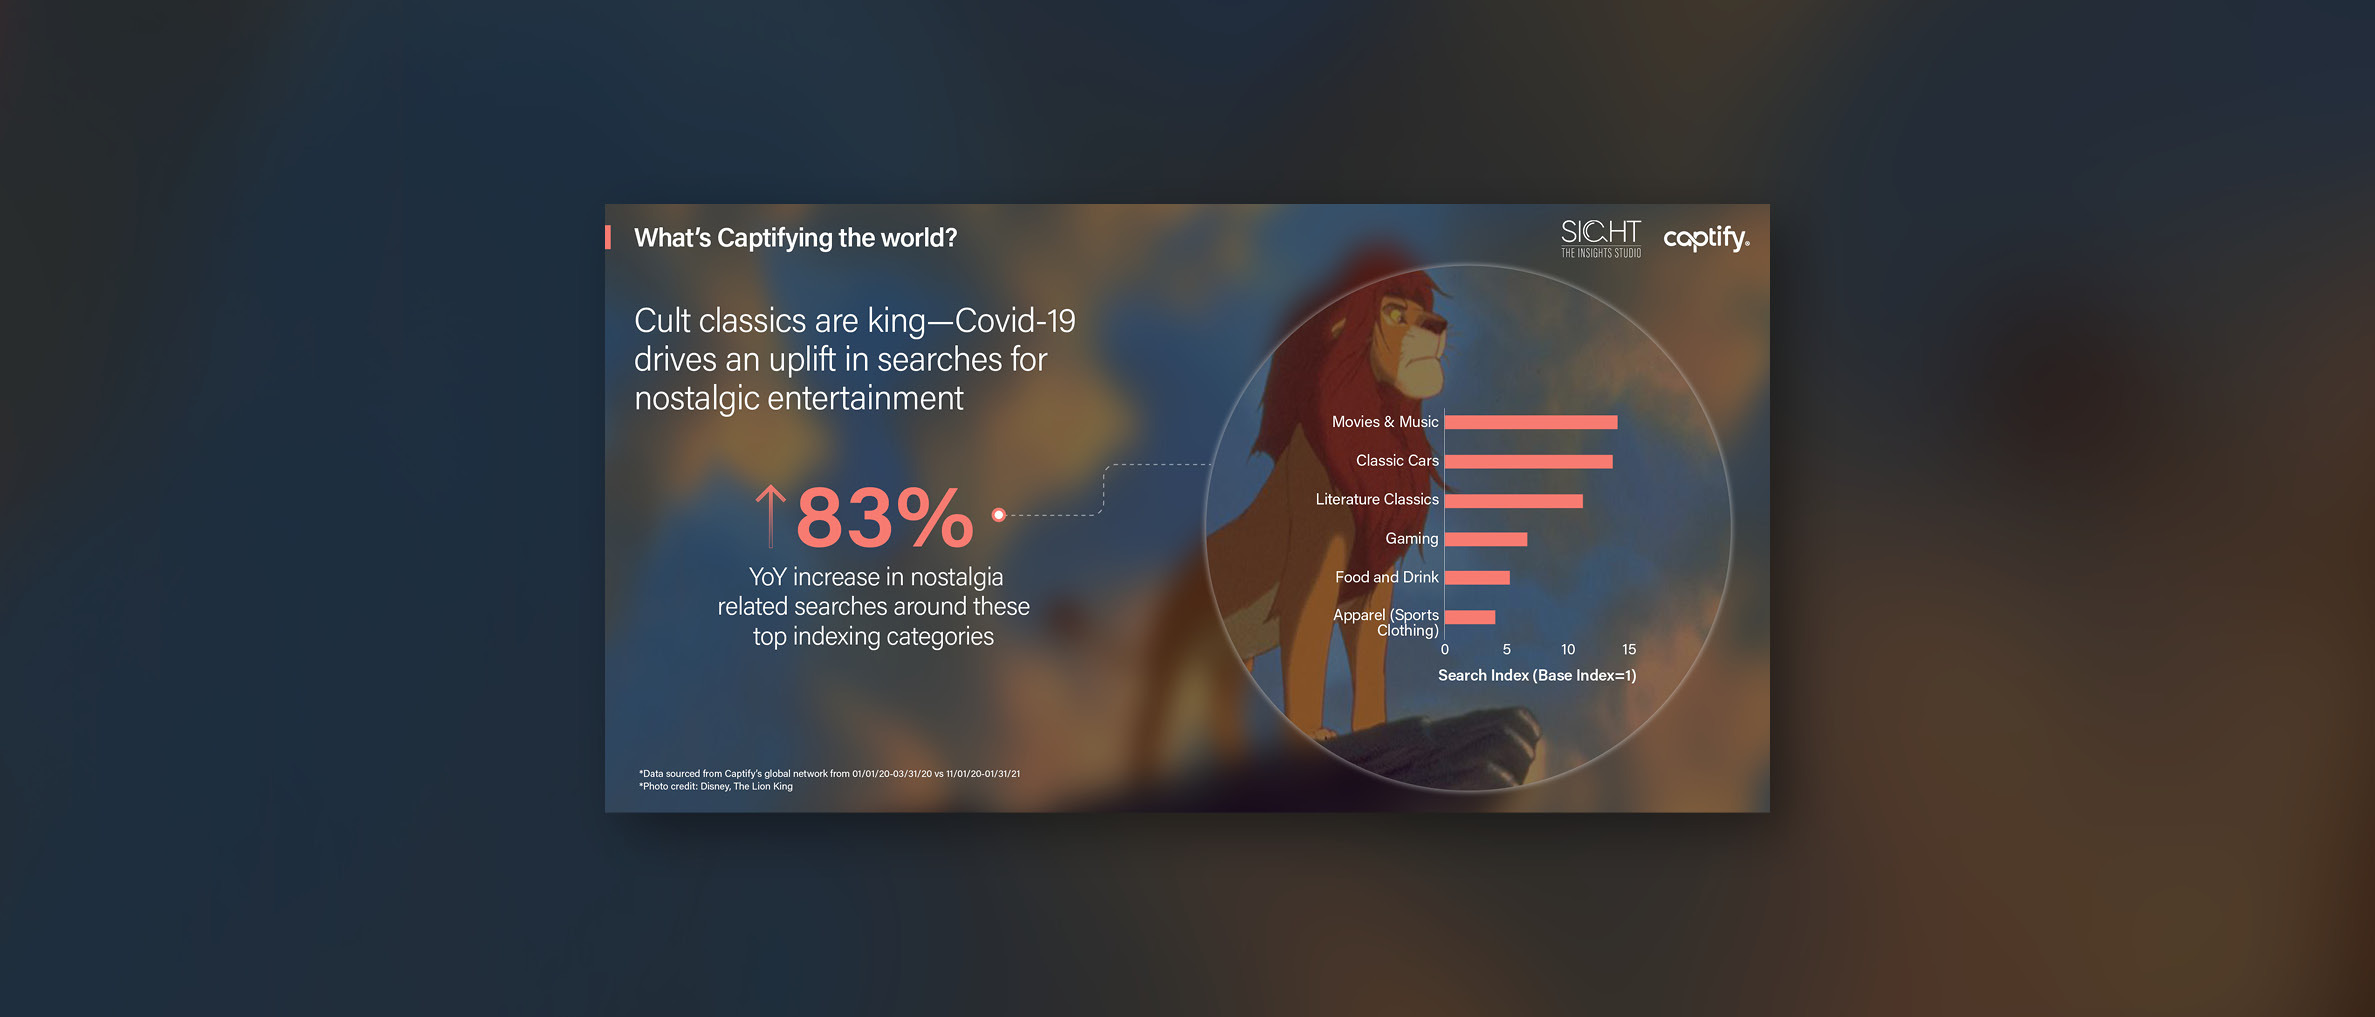 What's Captifying the world: Cult classics are king—Covid-19 drives an uplift in searches for nostalgic entertainment